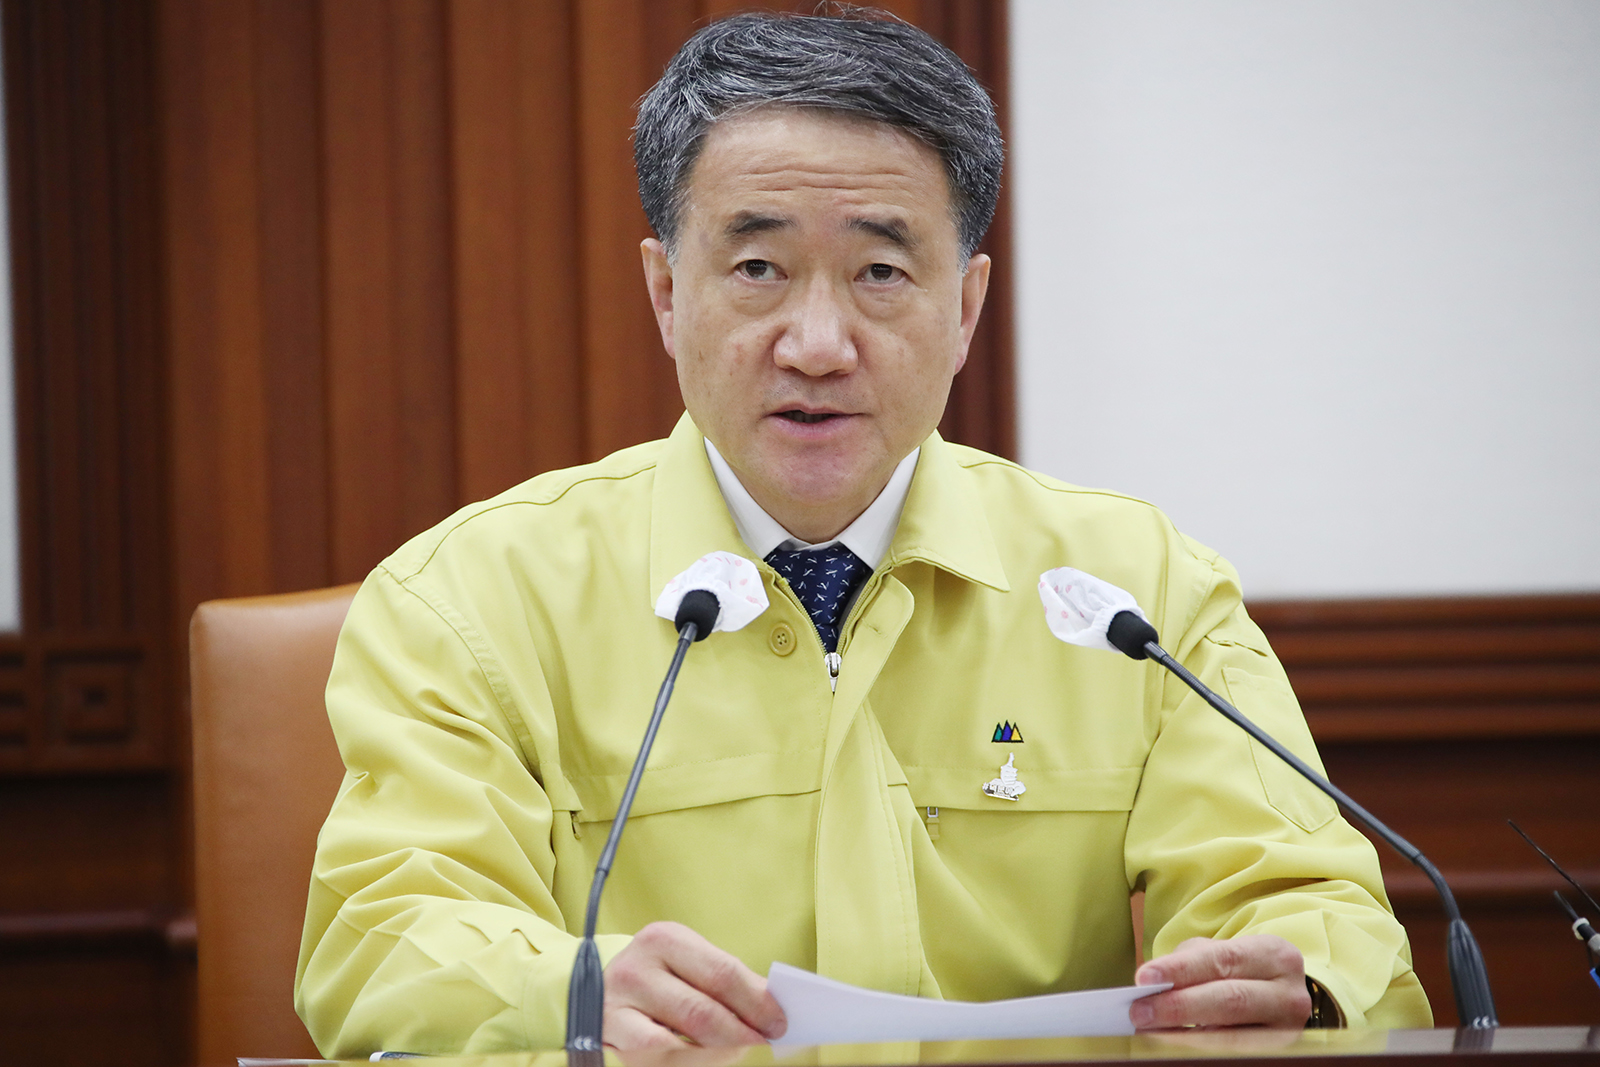 Health Minister Park Neung-hoo speaks during a meeting of the Central Disease Control Headquarters at the government complex in Seoul on July 20, to discuss measures to prevent the spread of the novel coronavirus.